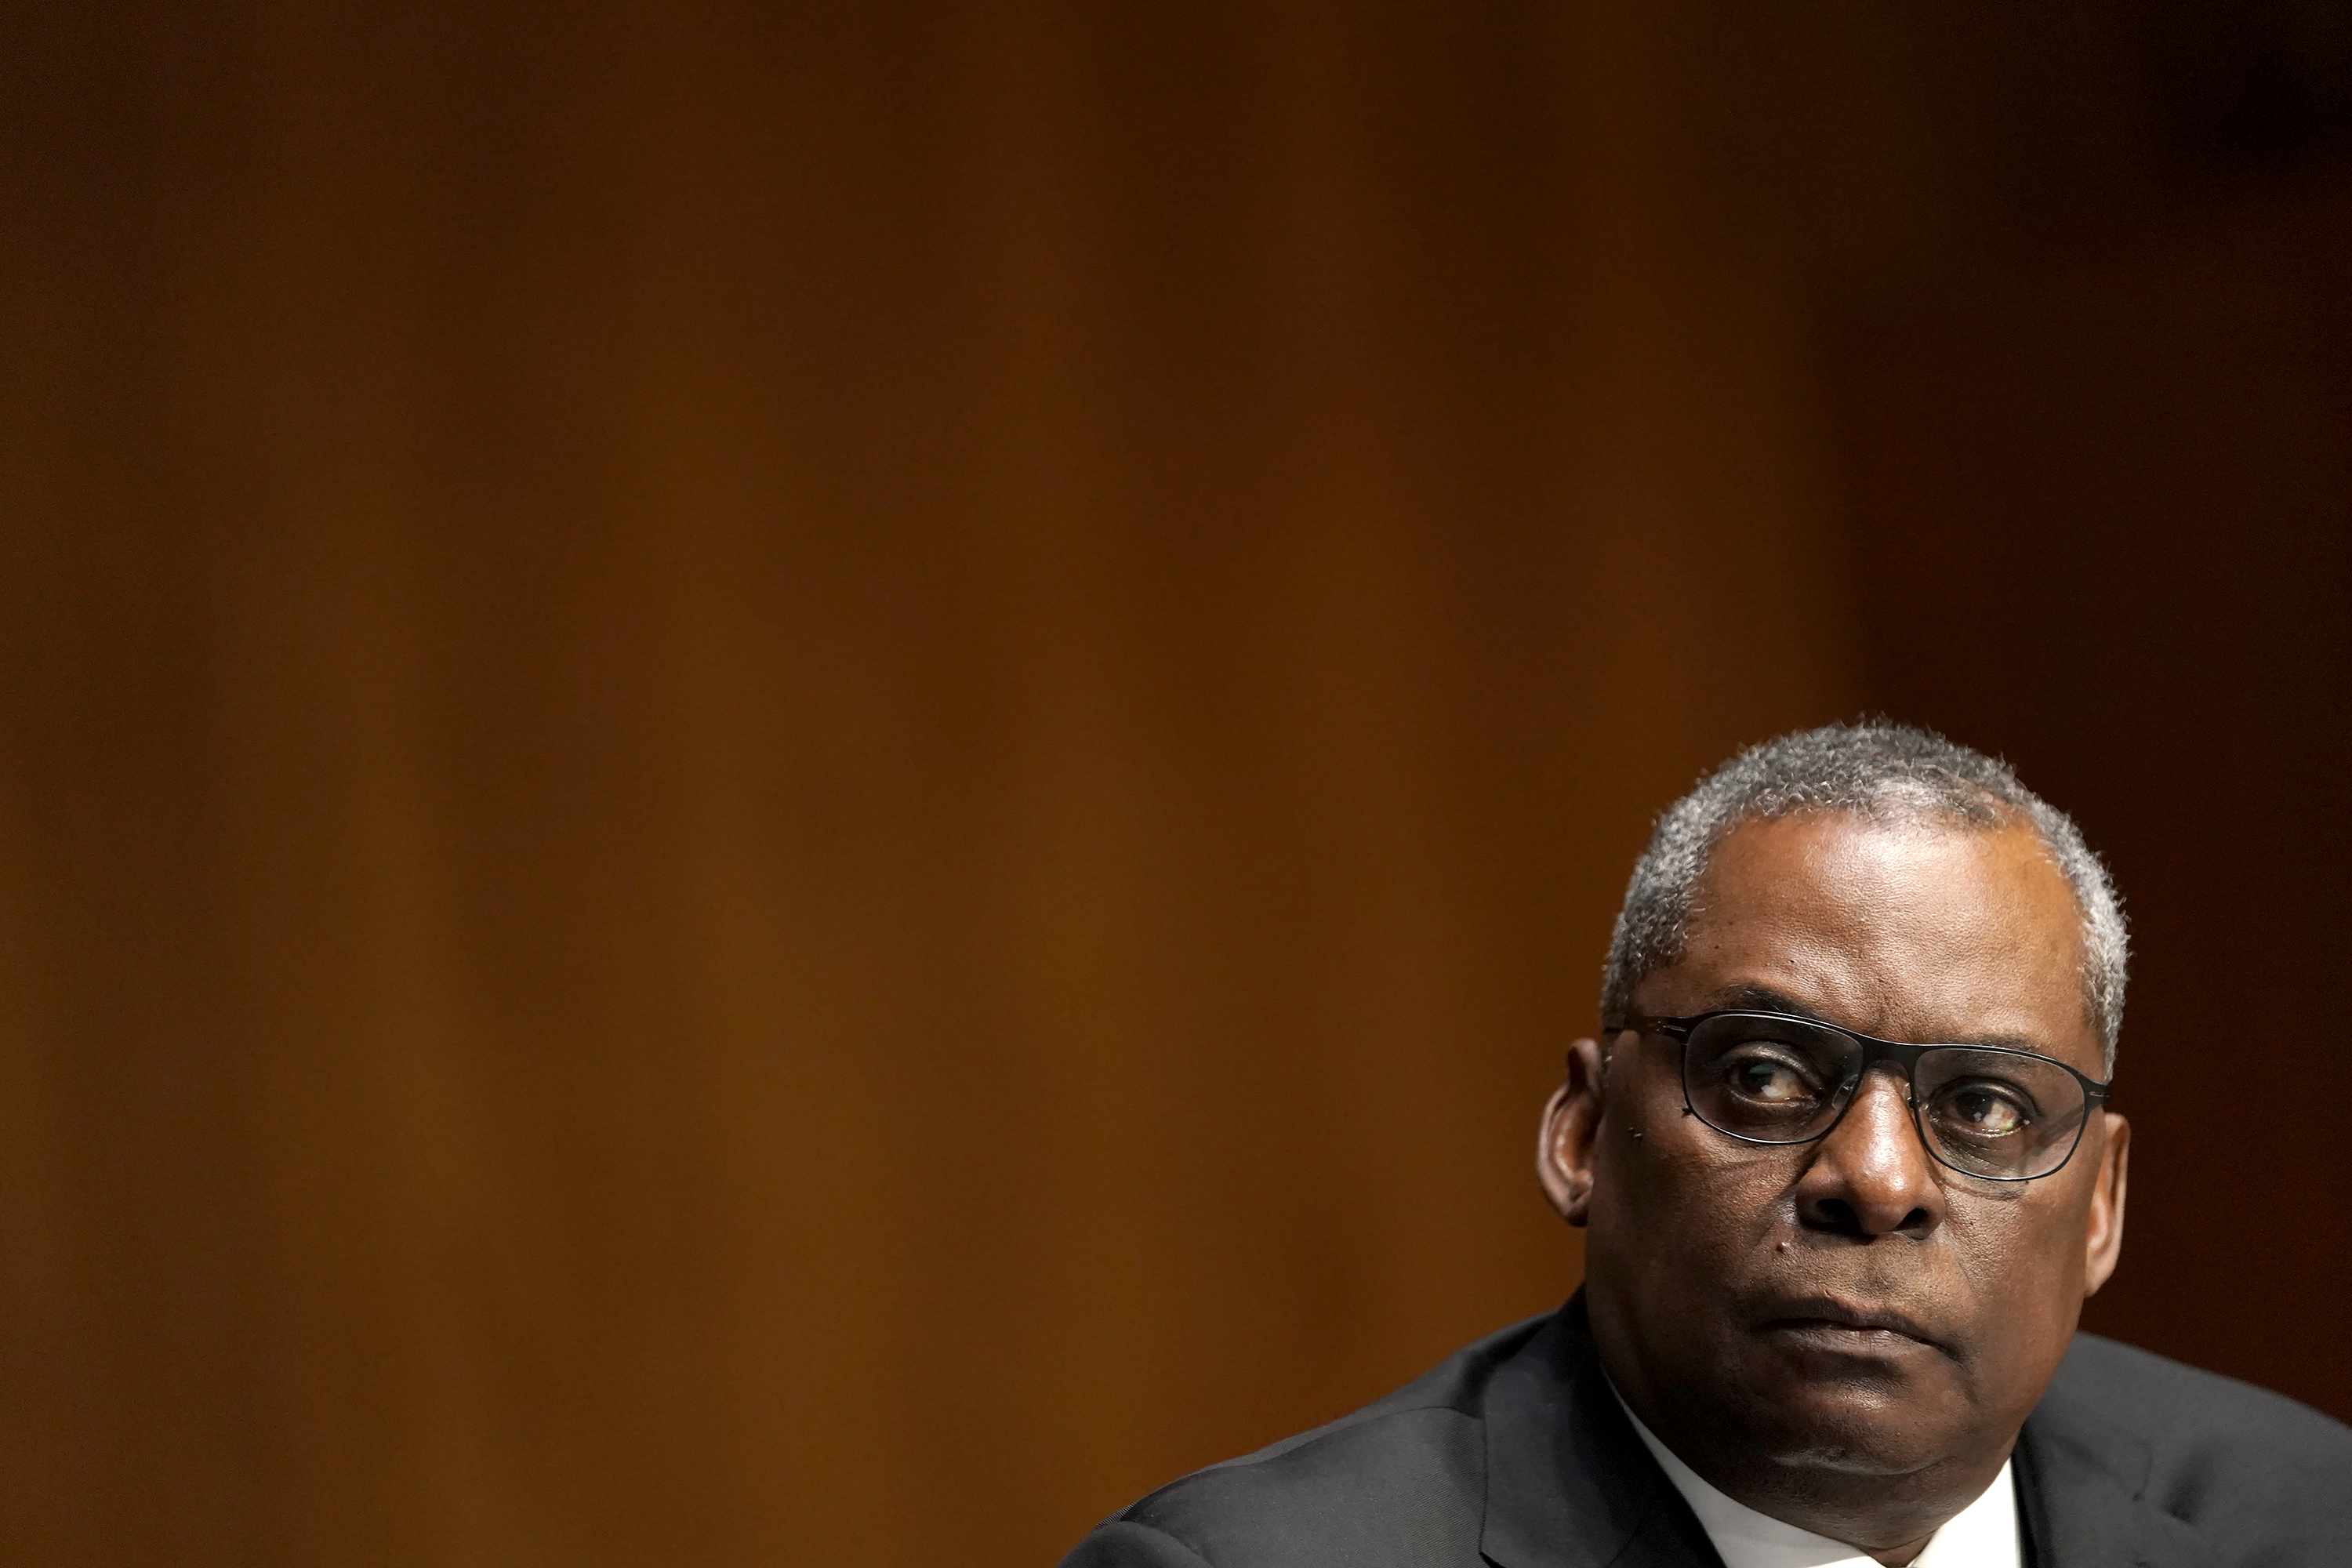 Retired Army Gen. Lloyd Austin, President Joe Biden's pick to be Defense Secretary, testifies at his confirmation hearing before the Senate Armed Services Committee on Jan. 19, 2021, in Washington. (Greg Nash-Pool/Getty Images)